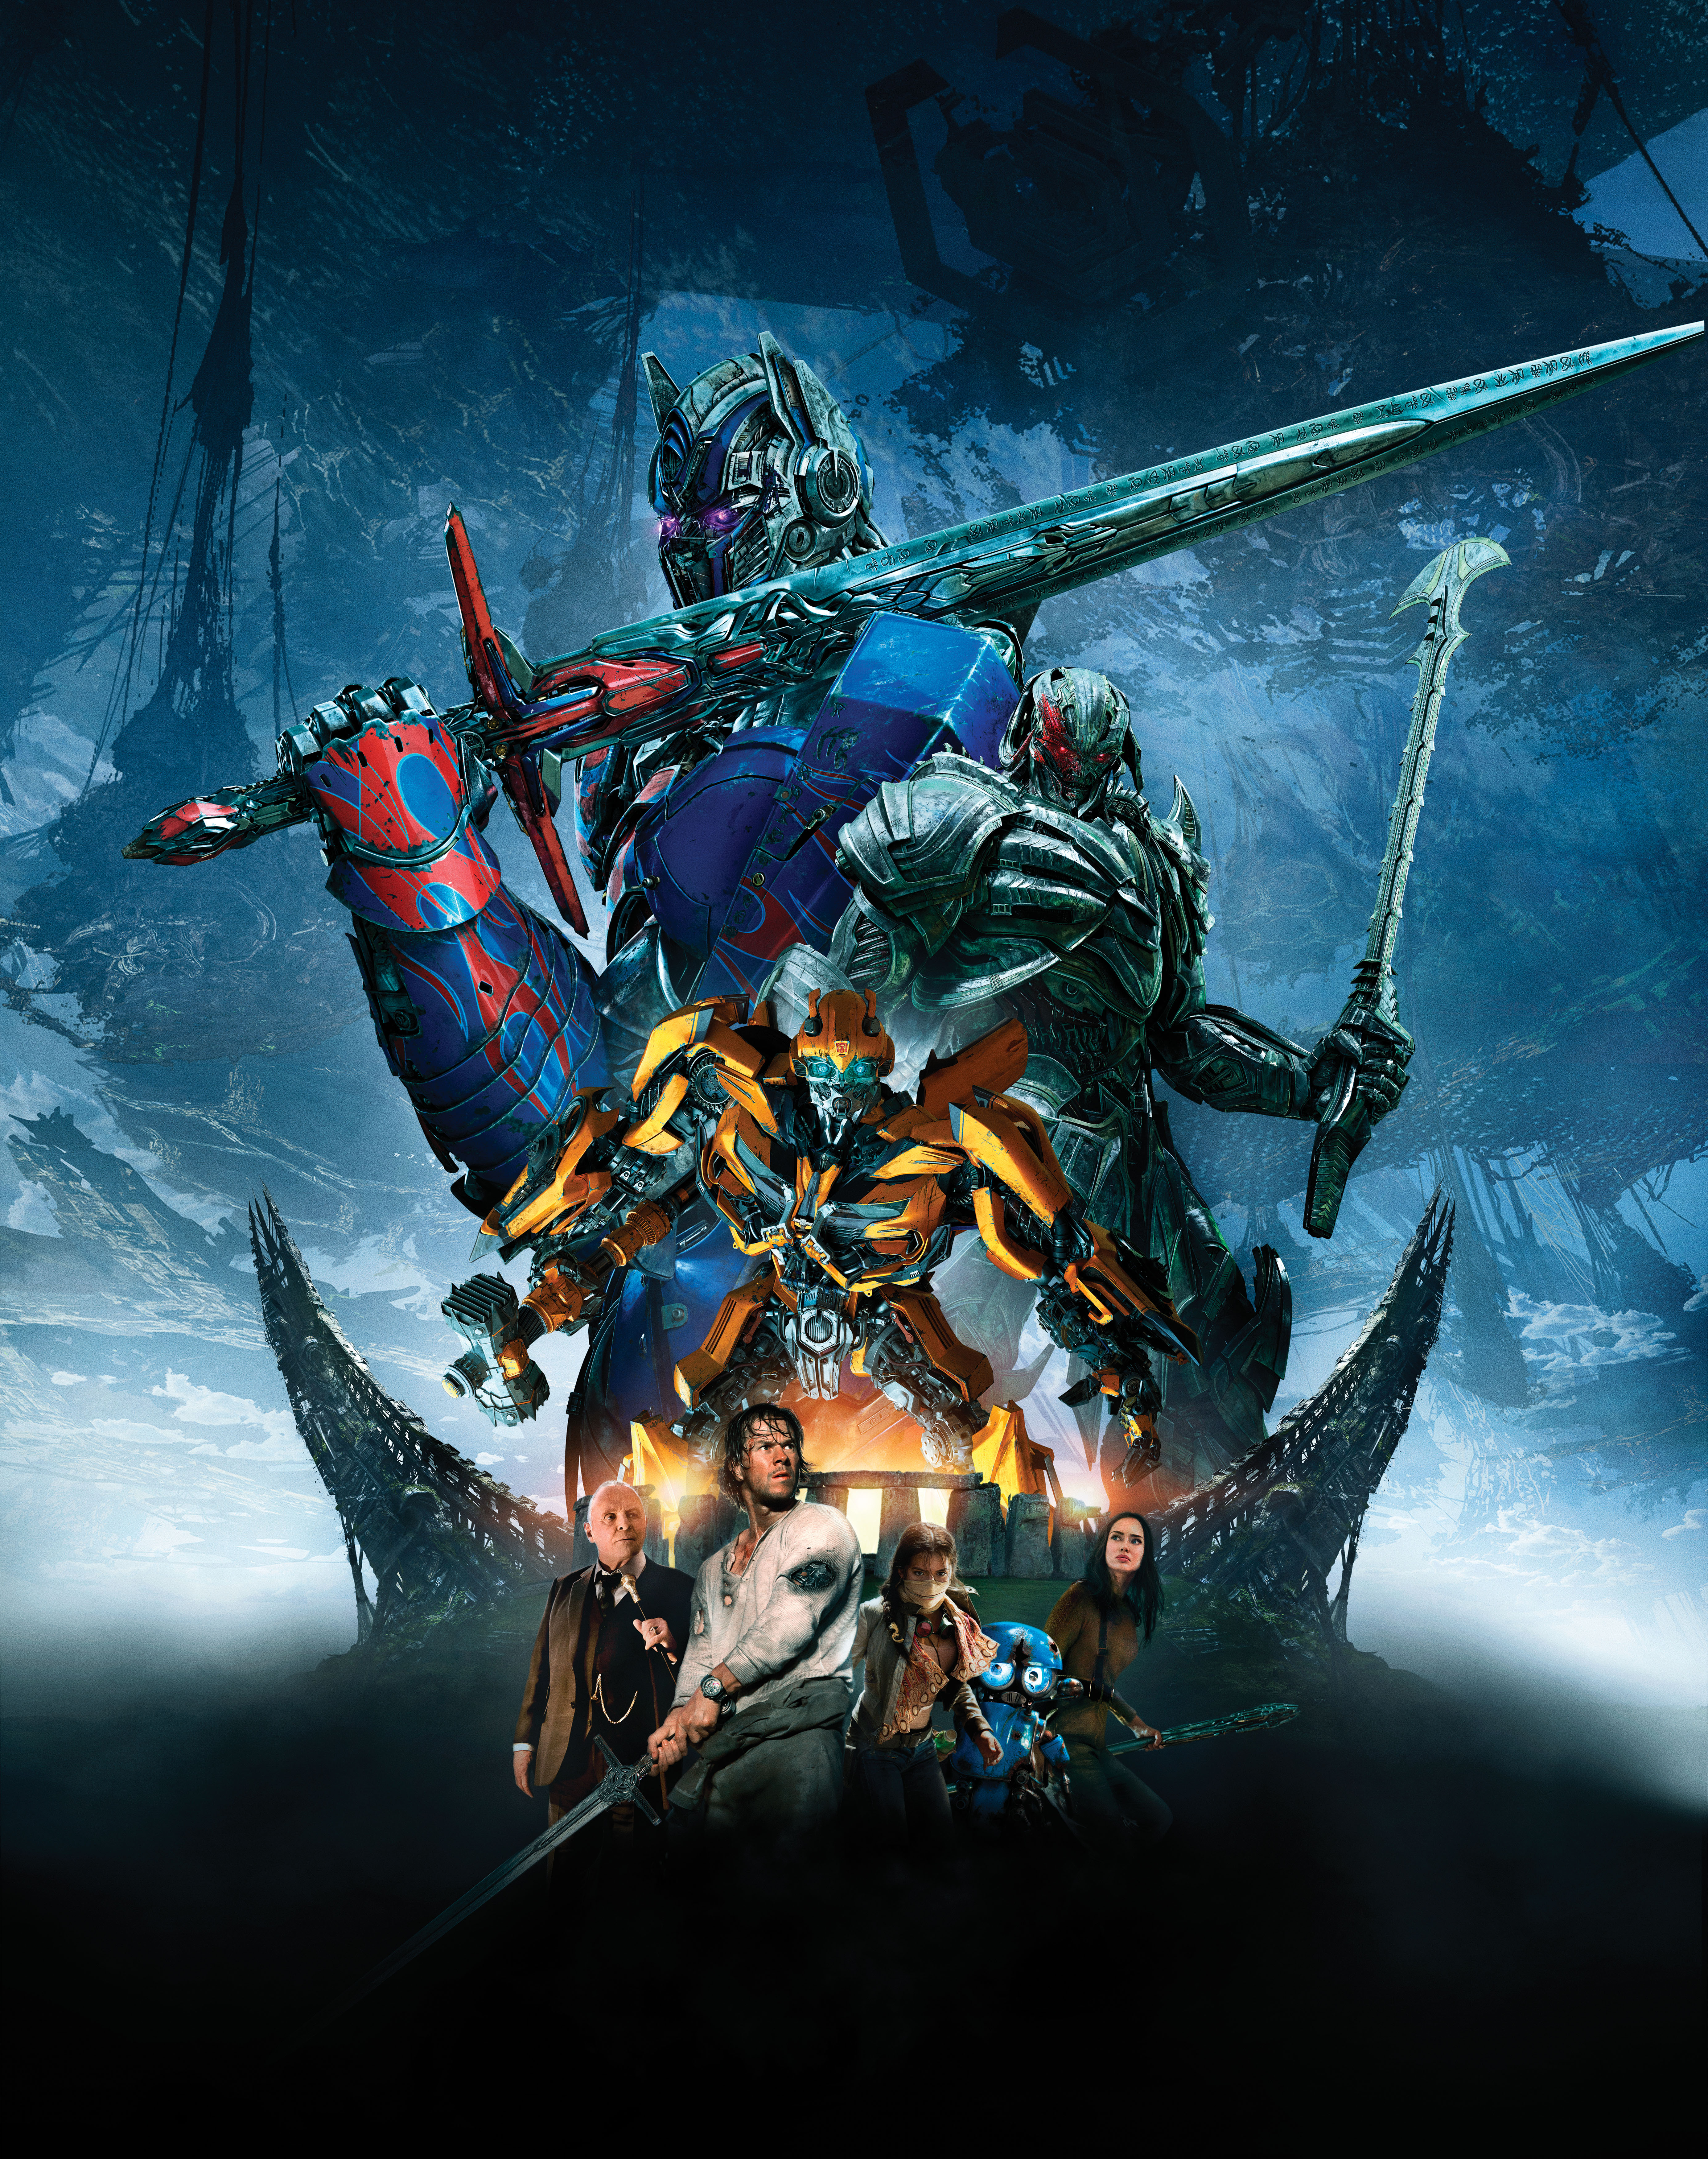 Image Transformers The Last Knight Swords Robot Warriors 5539x7000